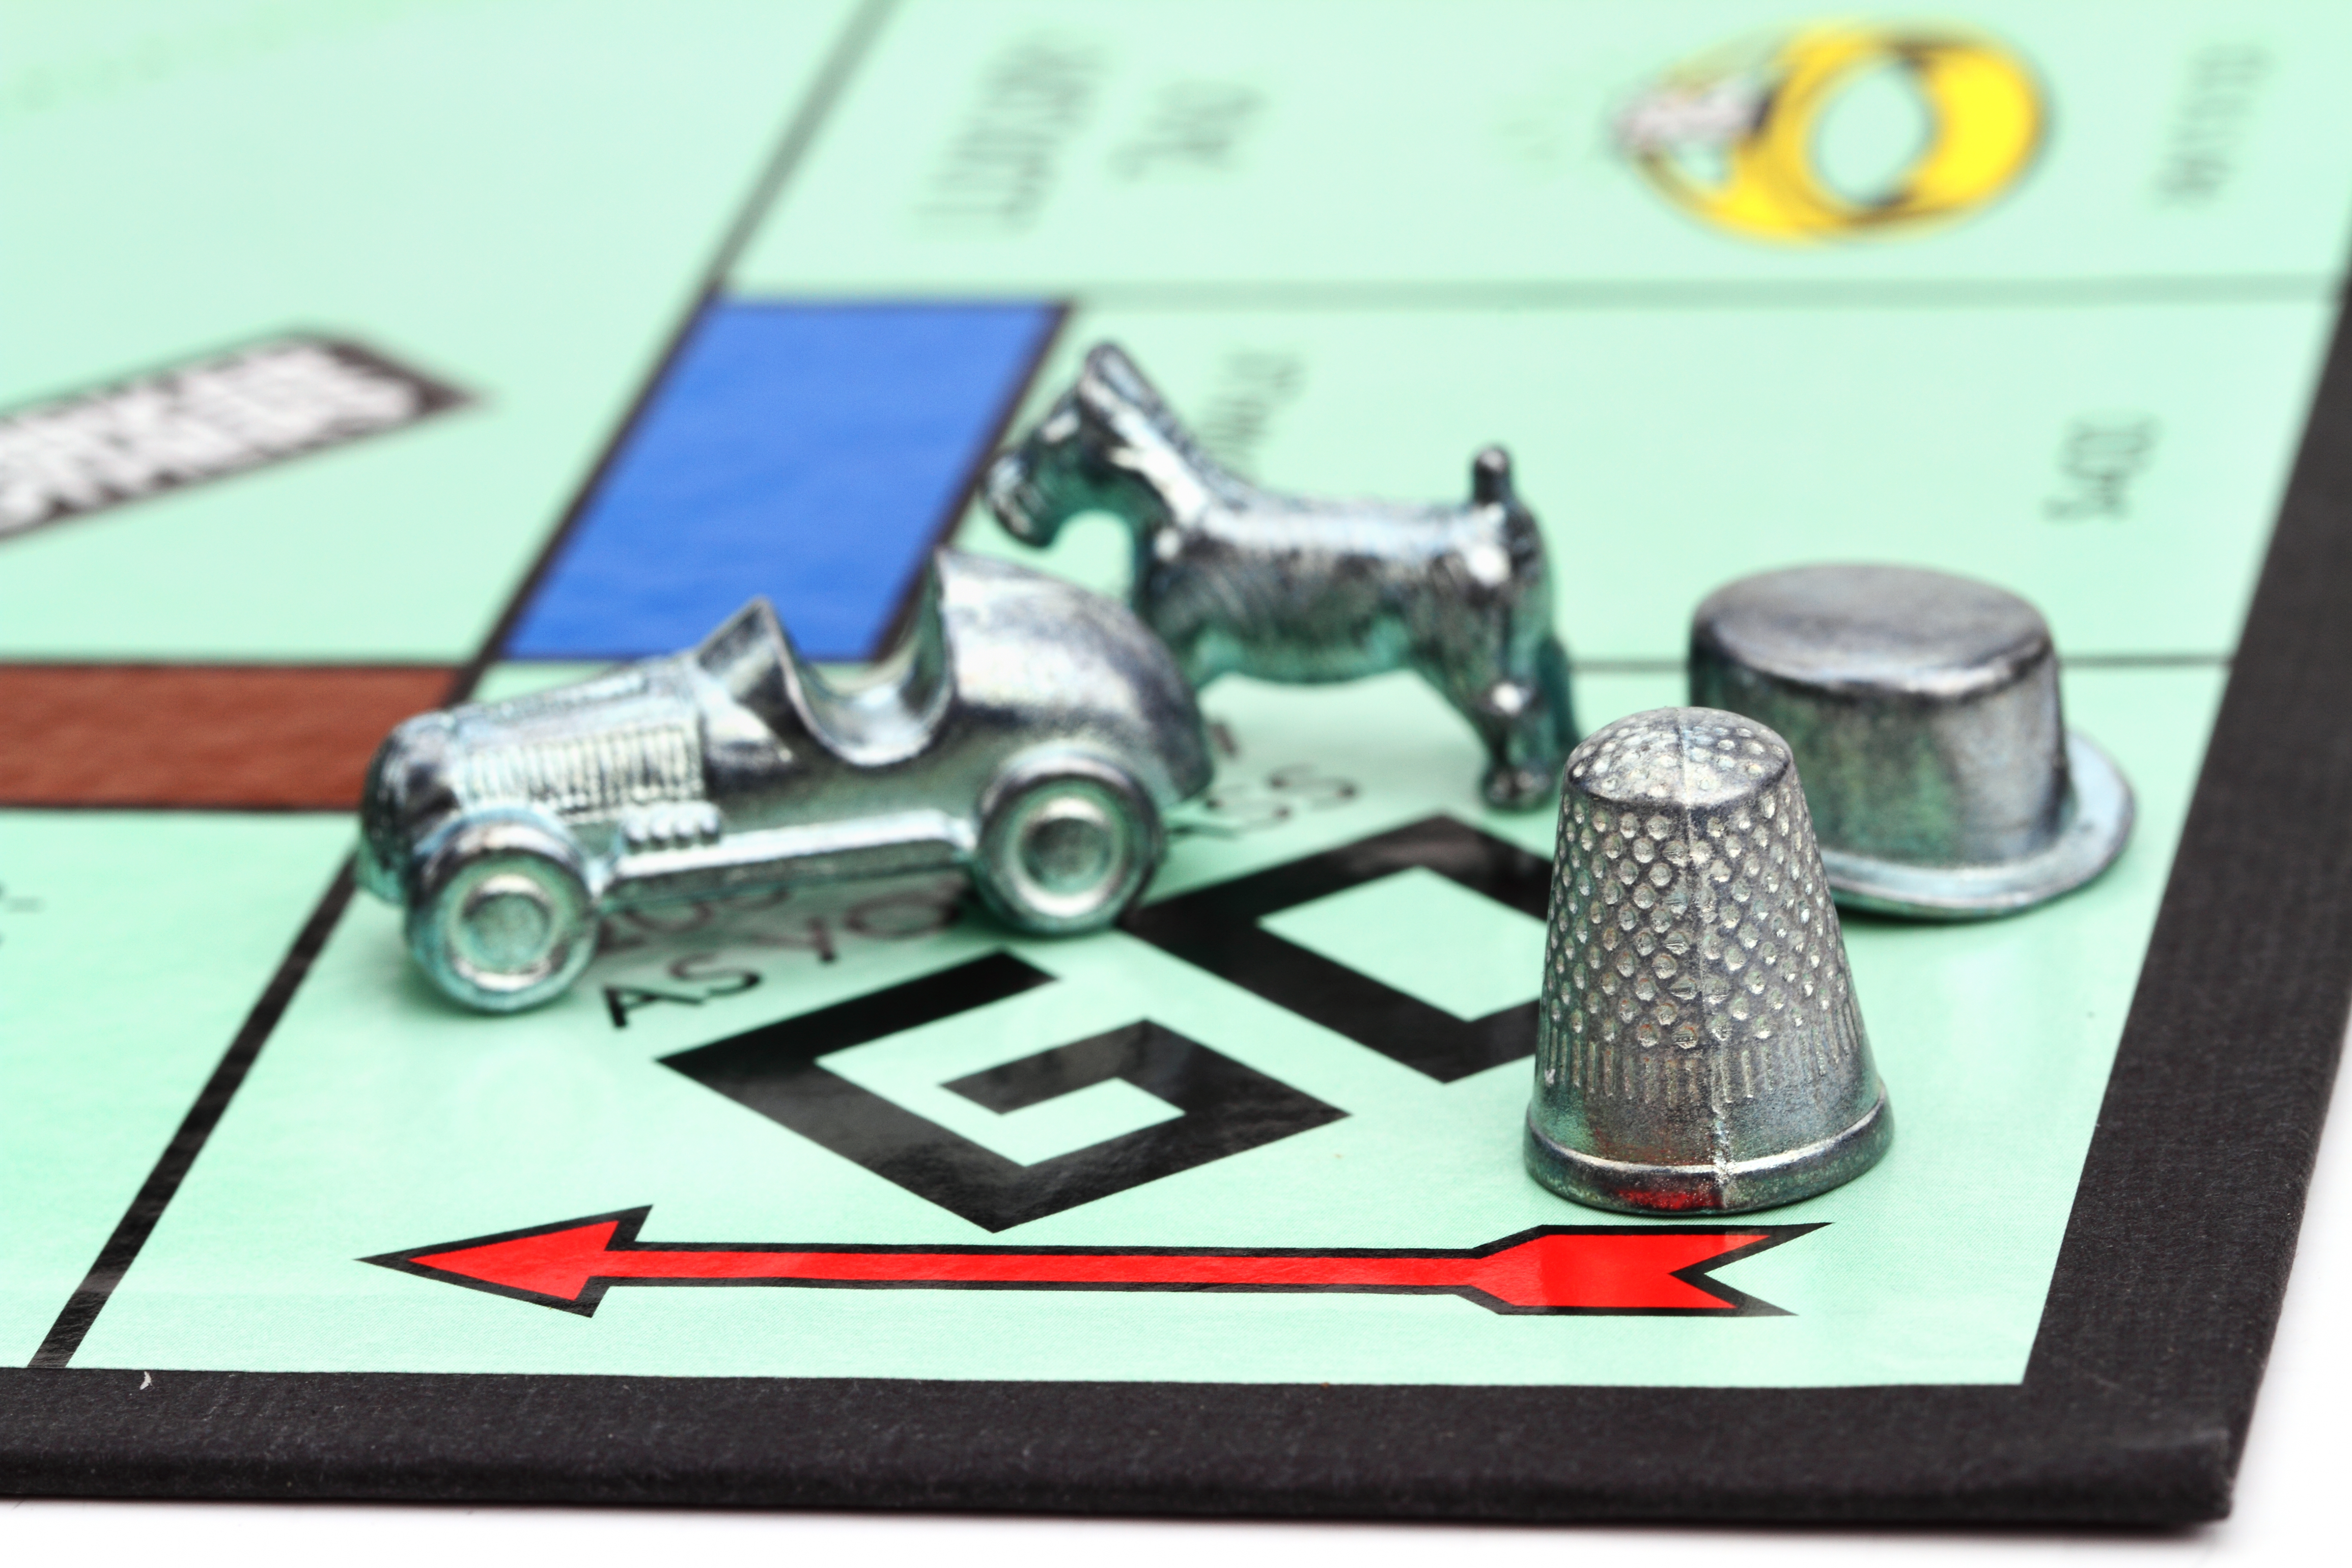 monopoly thimble voted off the gameboard